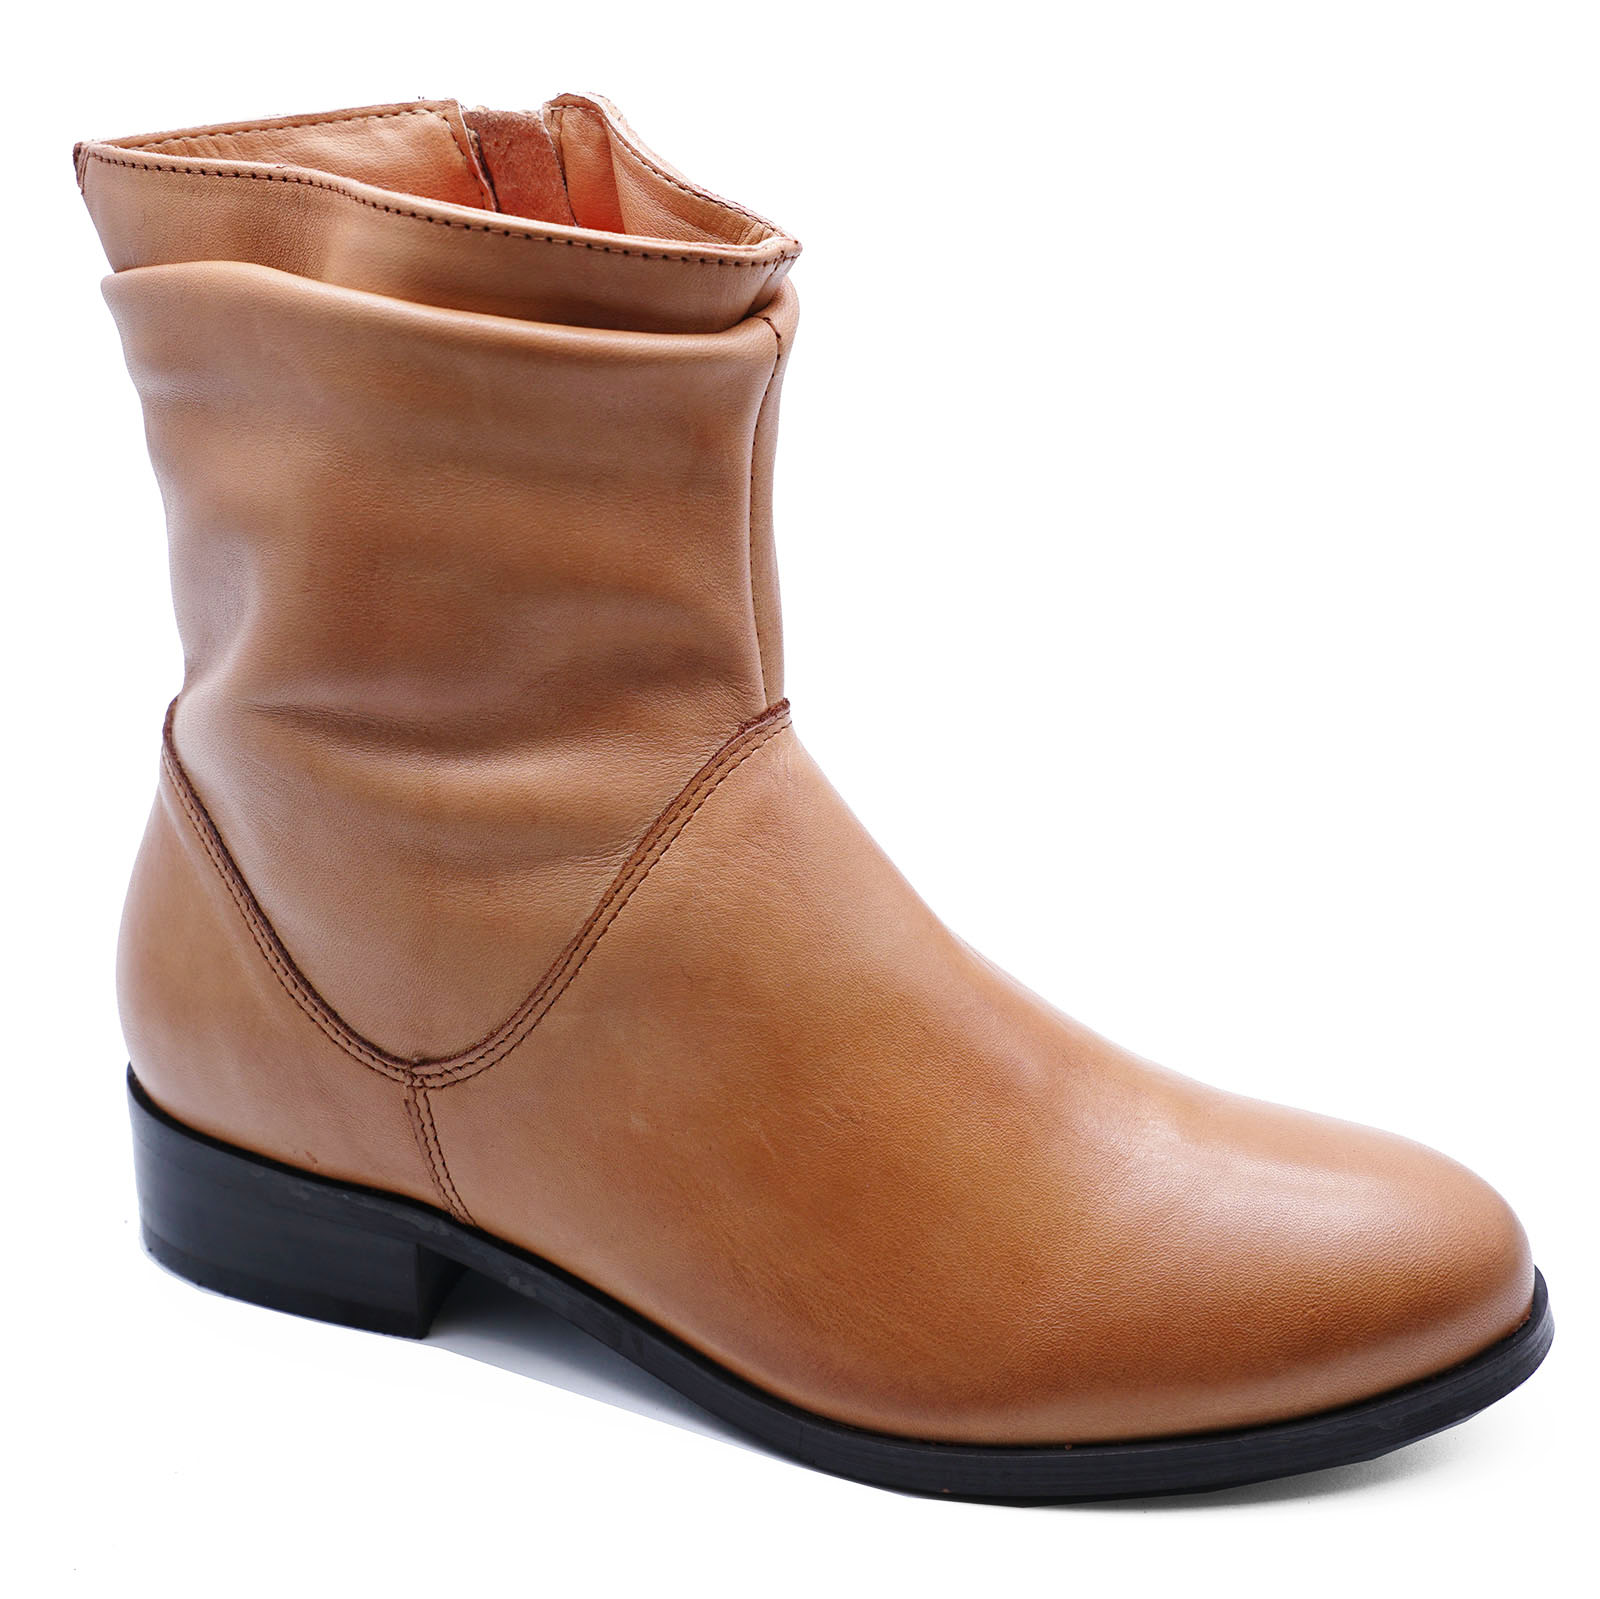 LADIES-FLAT-GENUINE-LEATHER-TAN-ZIP-UP-ANKLE-CALF-BOOTS-COMFY-SHOES-SIZES-2-9 thumbnail 17